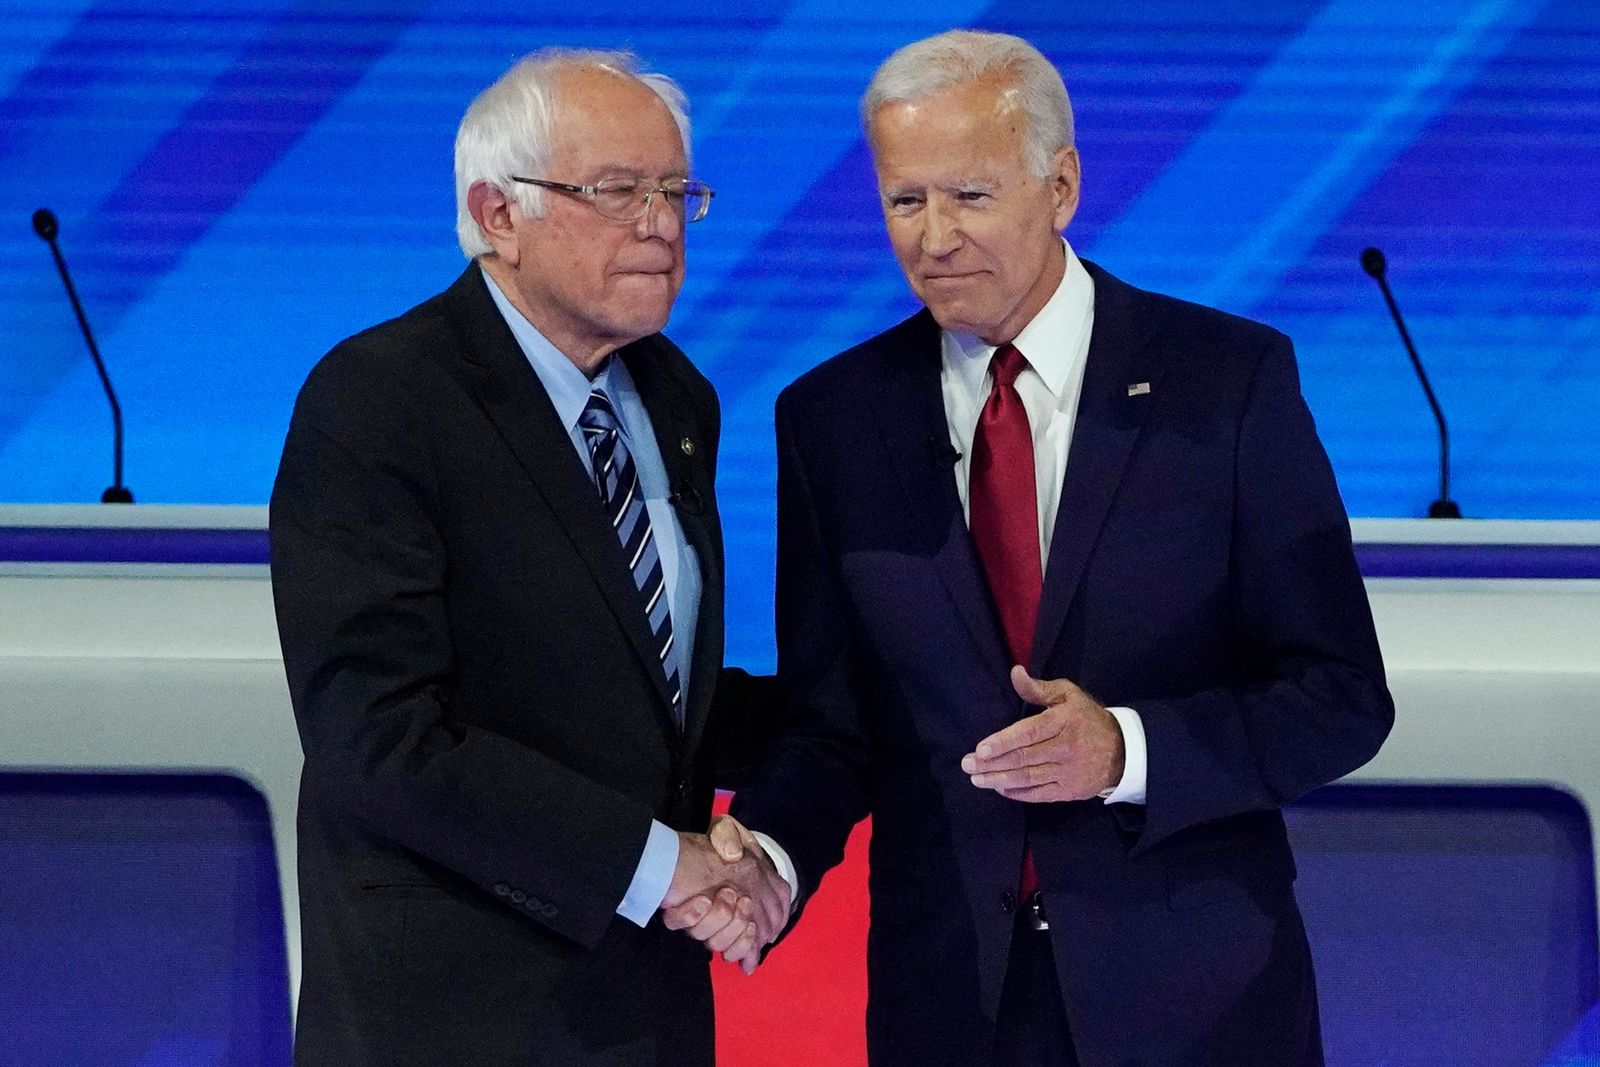 Democratic presidential candidates Sen. Bernie Sanders, I-Vt., left, and former Vice President Joe Biden greet each other Thursday, Sept. 12, 2019, before a Democratic presidential primary debate hosted by ABC at Texas Southern University in Houston. (AP Photo/David J. Phillip)